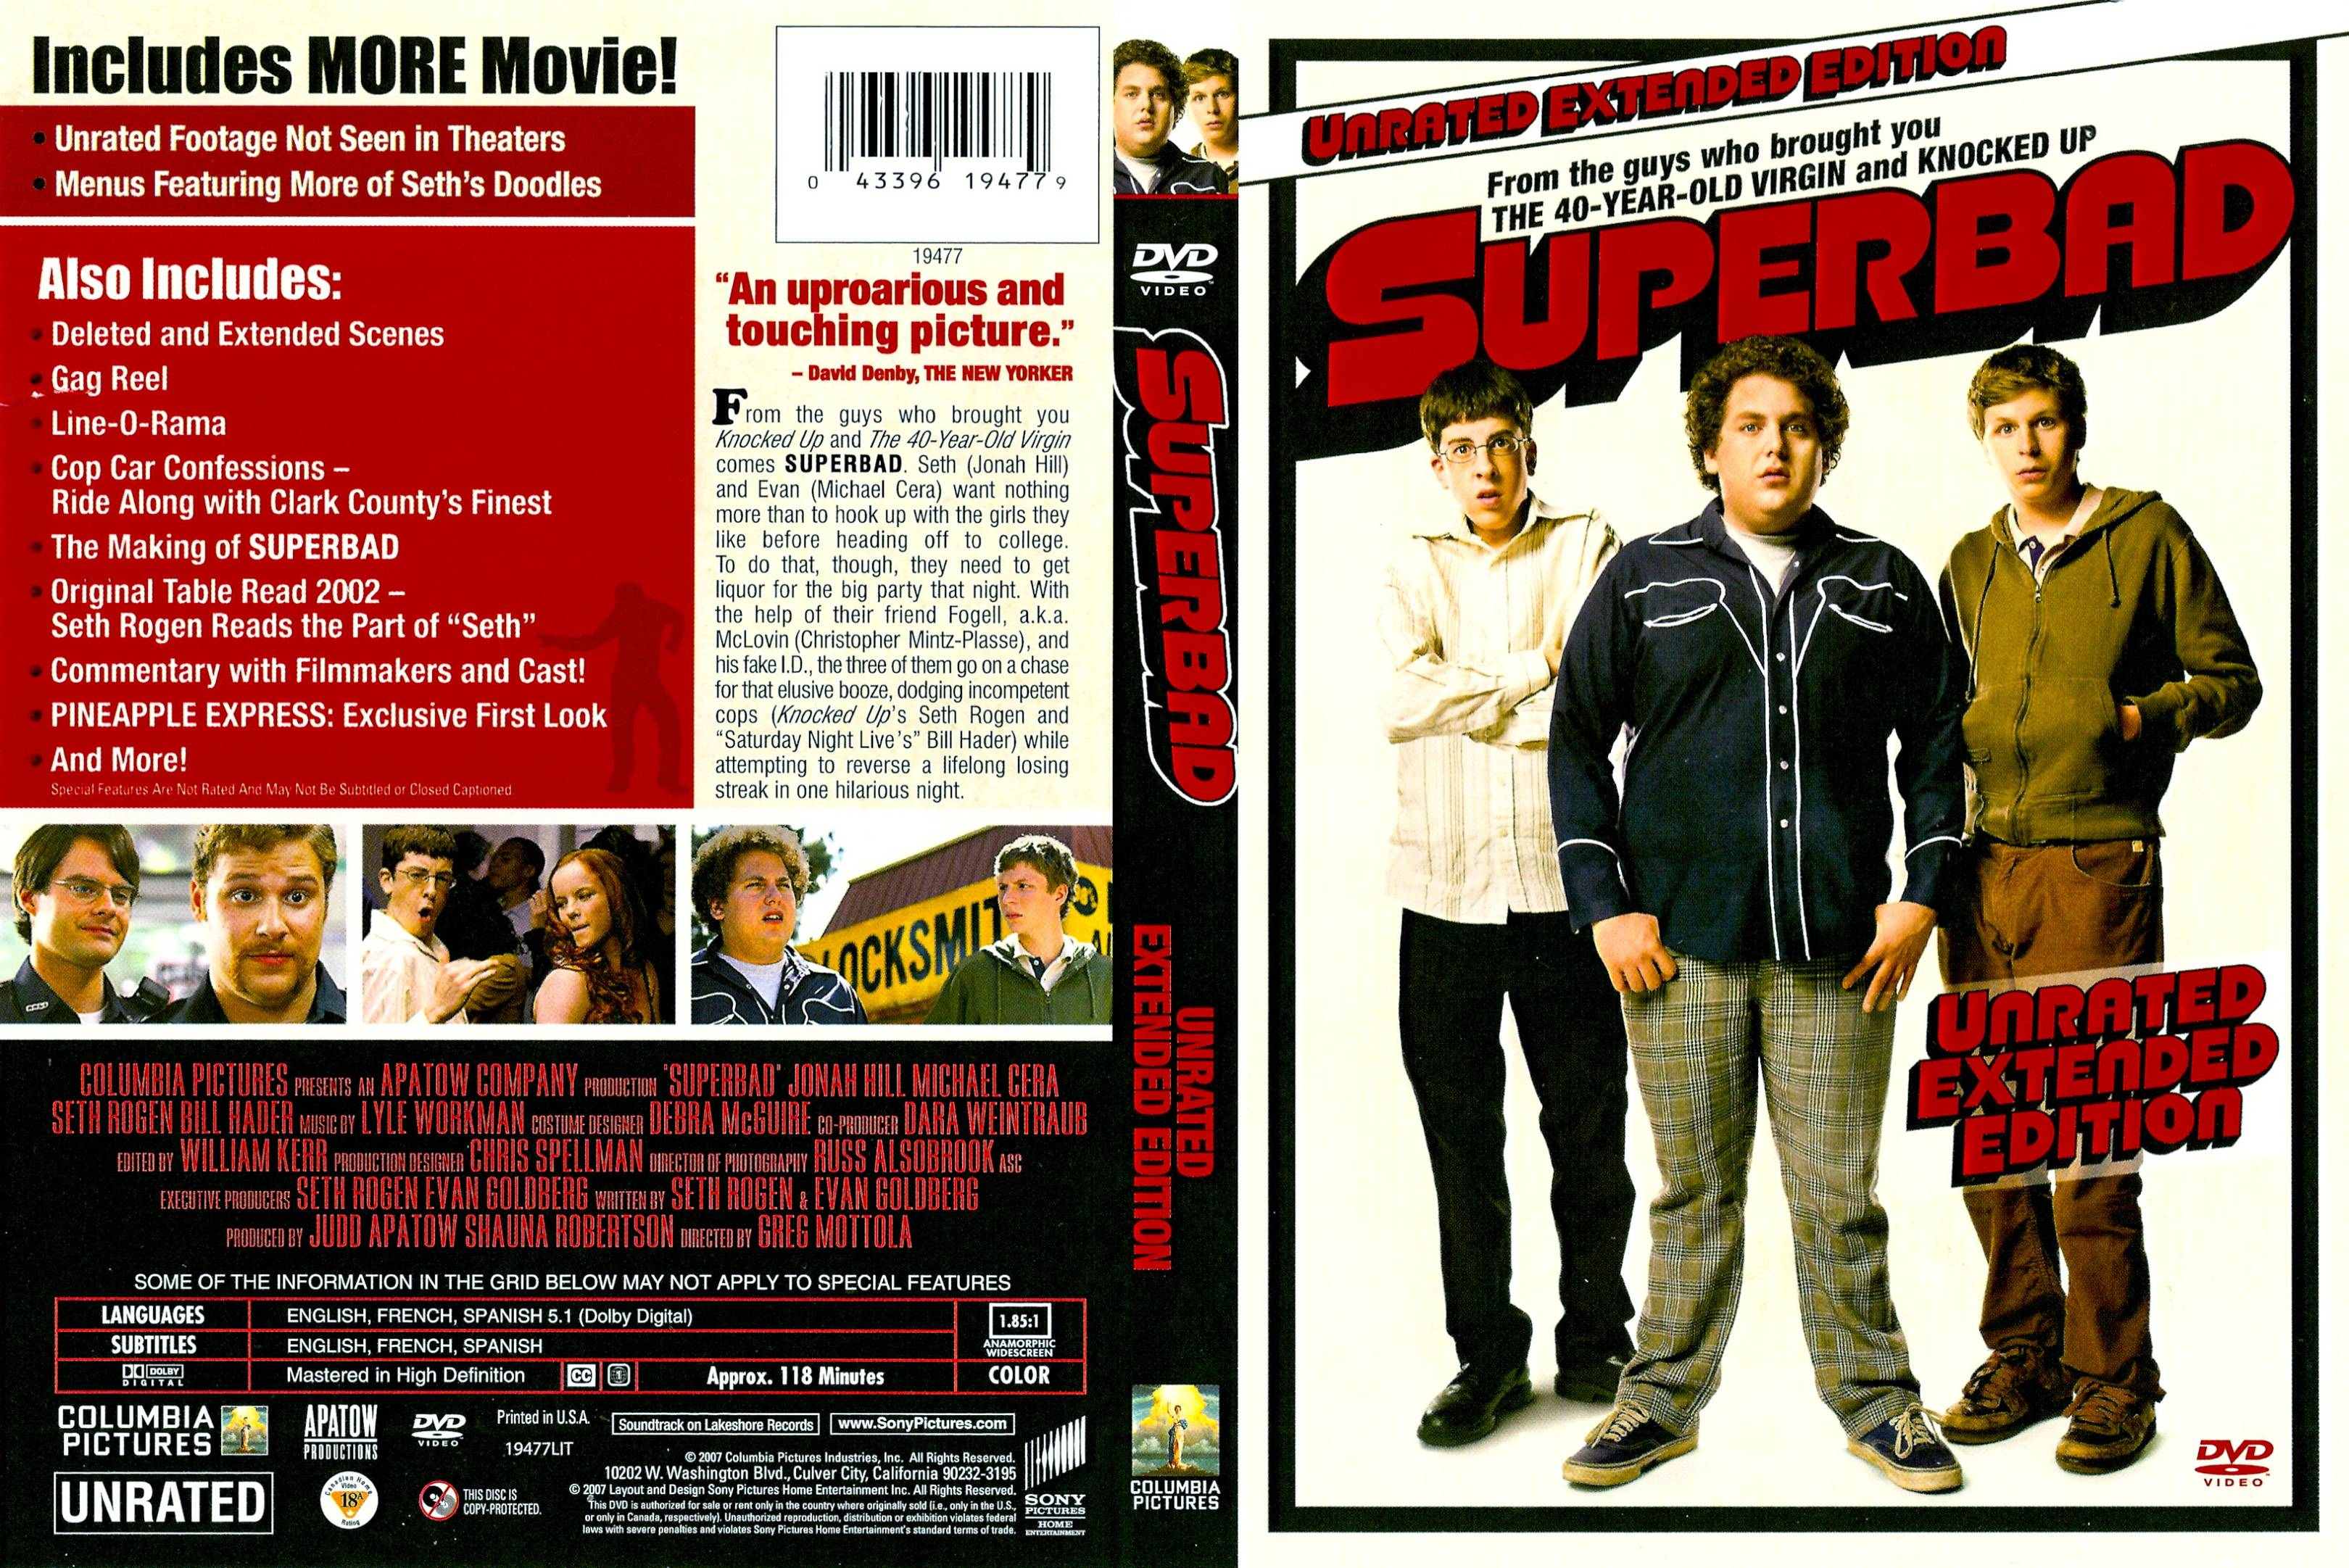 Covers Box Sk Superbad 2007 Unrated High Quality Dvd Blueray Movie